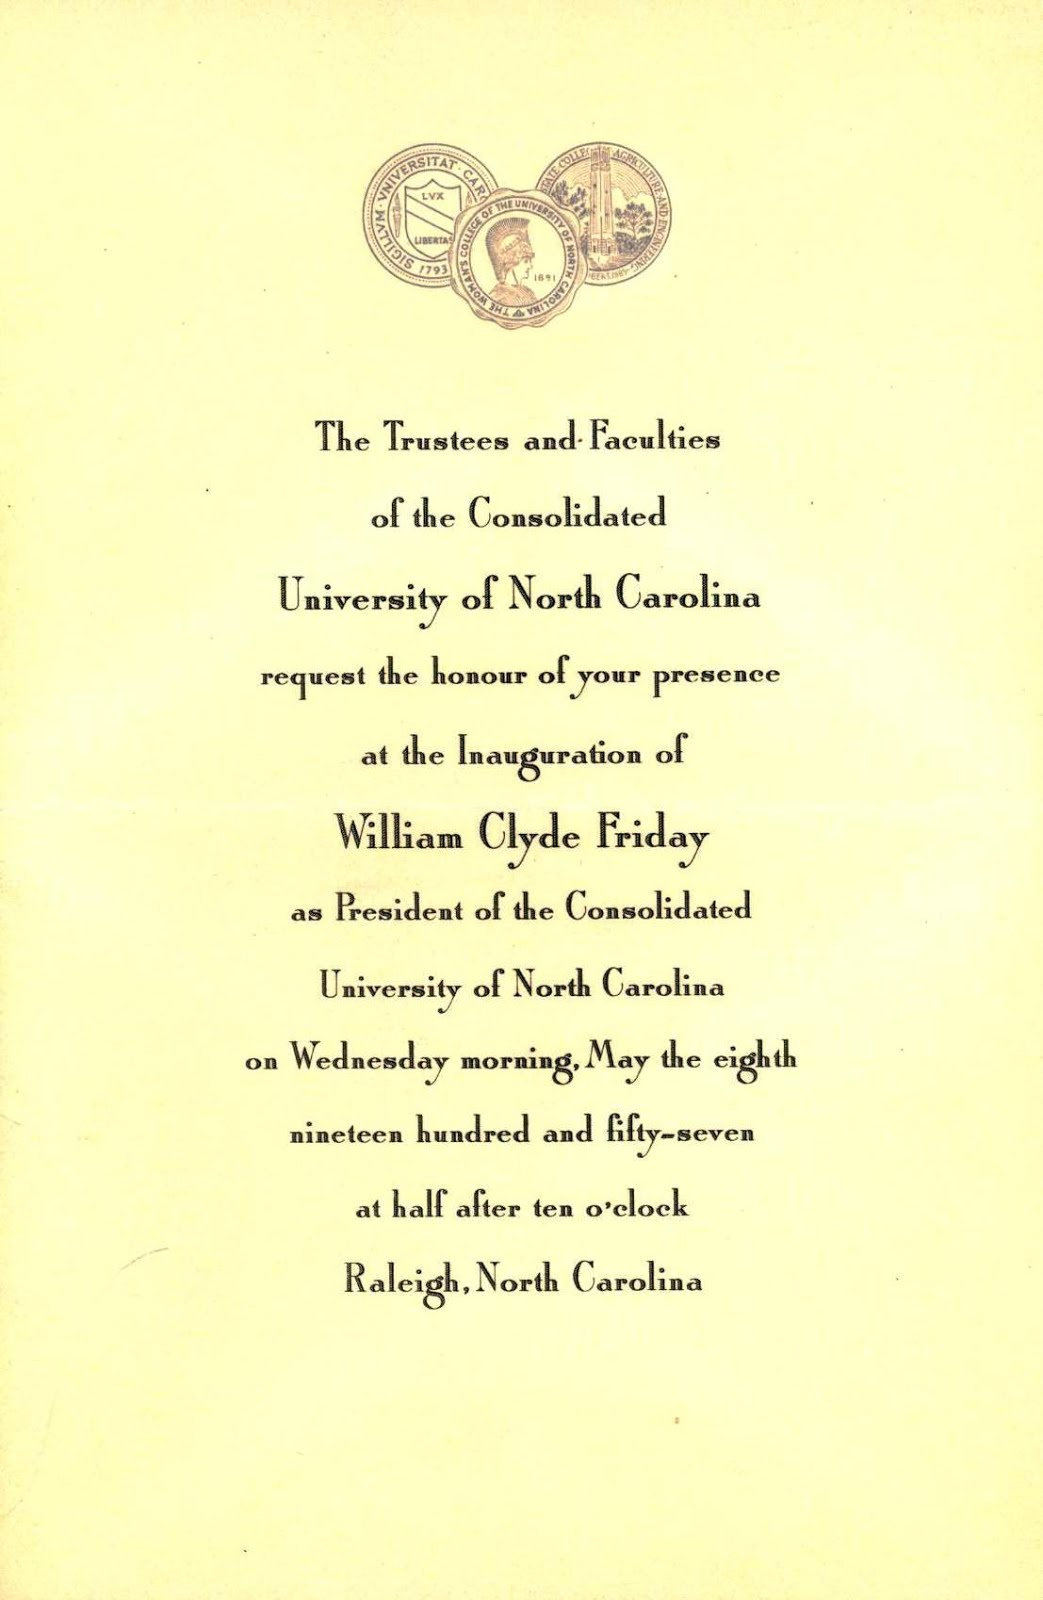 Spartan stories william friday and uncg invitation to the inauguration of friday as president of the consolidated university of north carolina 1957 stopboris Image collections